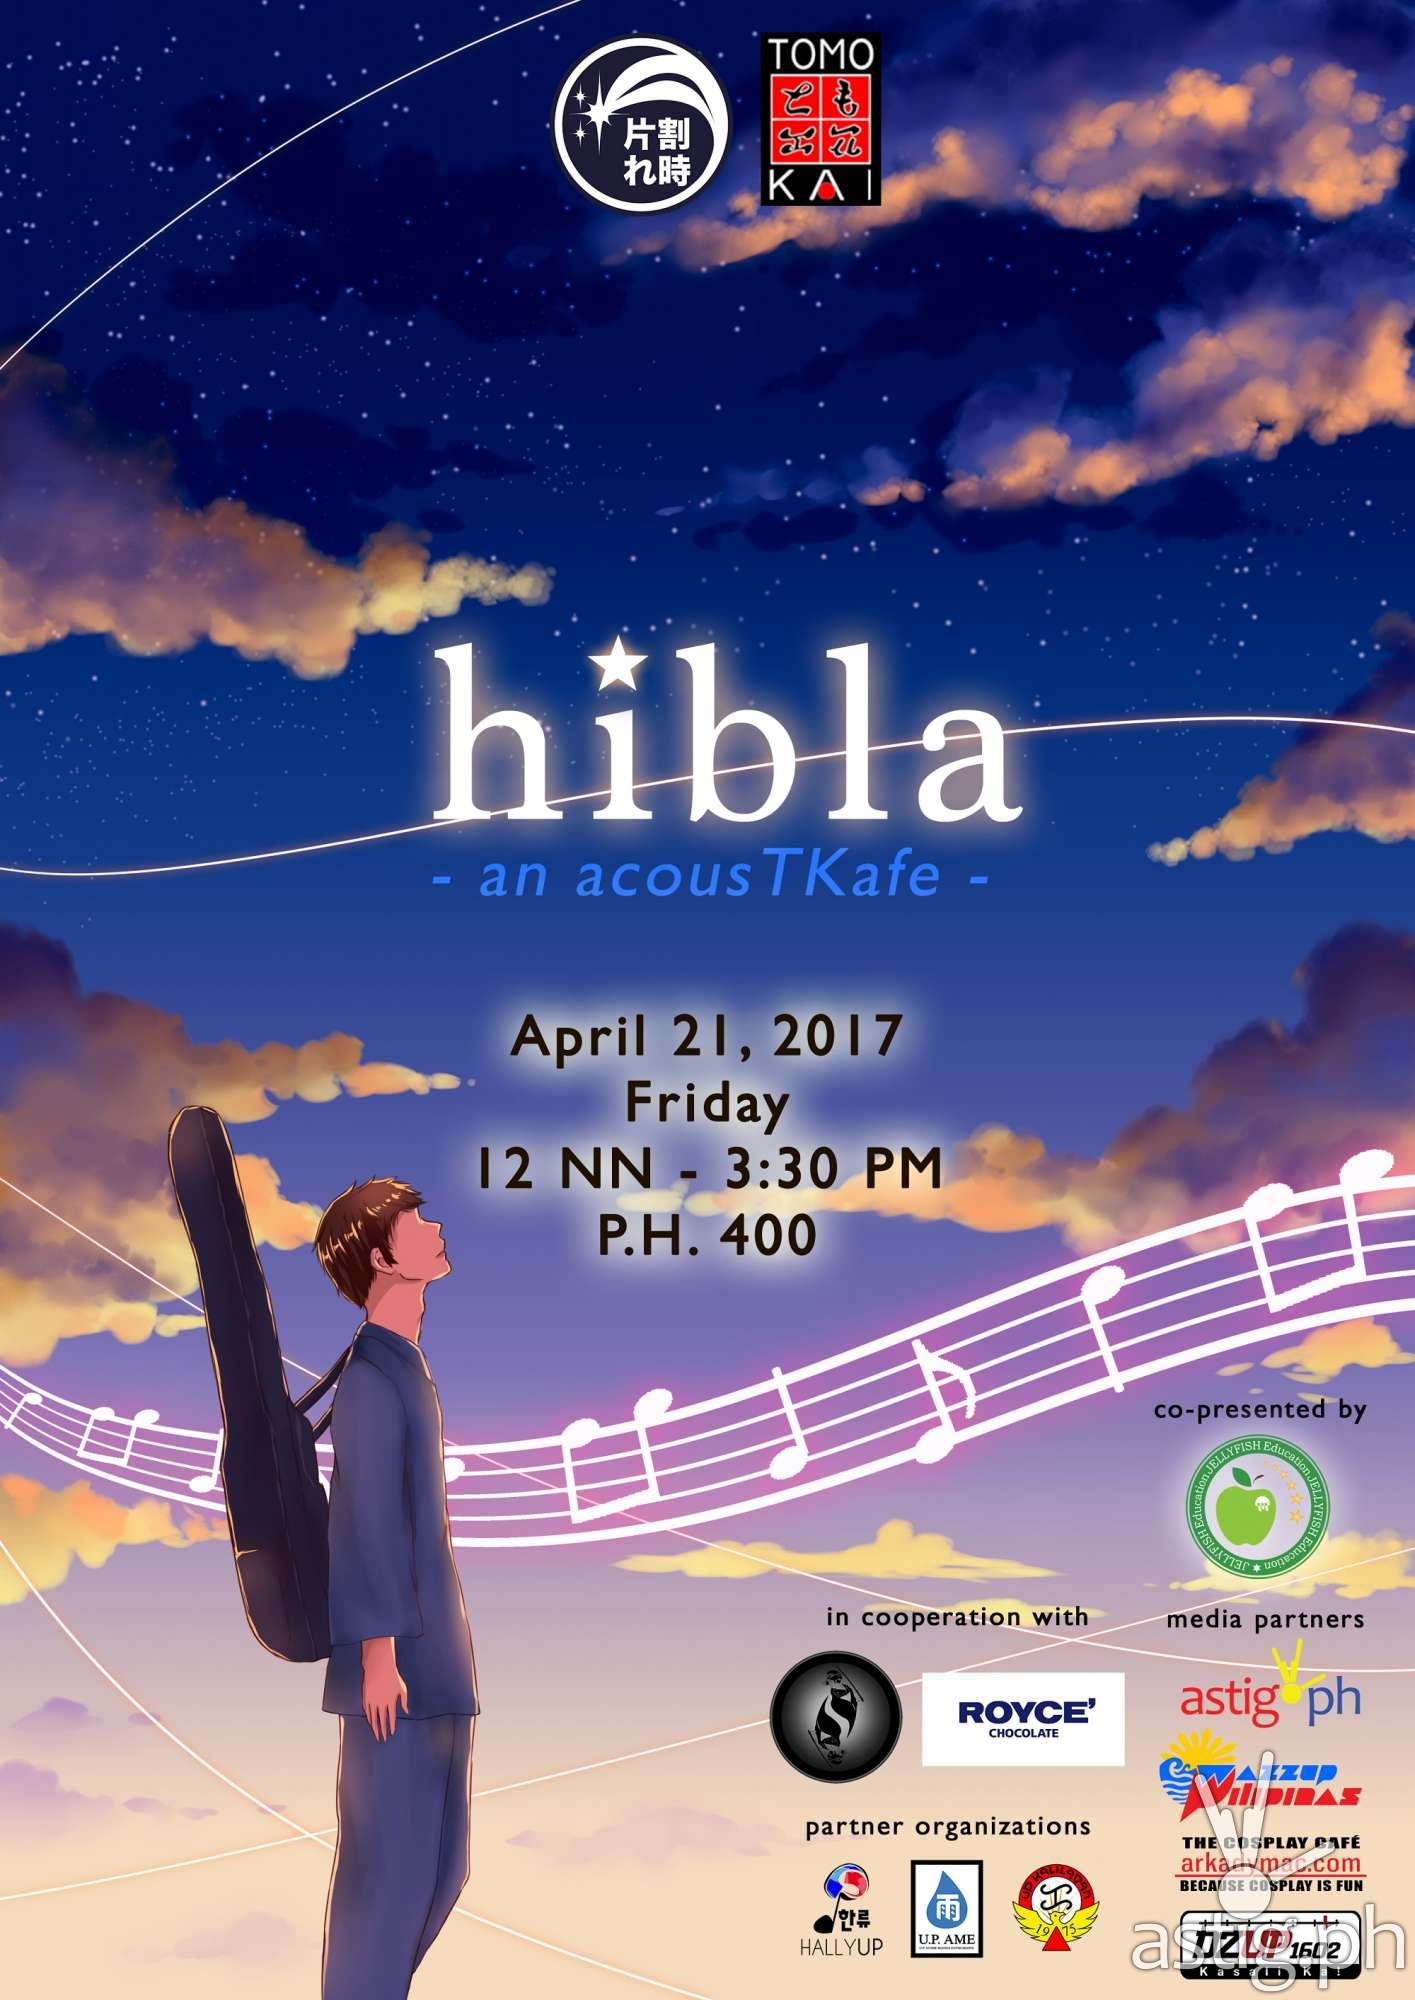 hibla event by UP Tomo-Kai poster